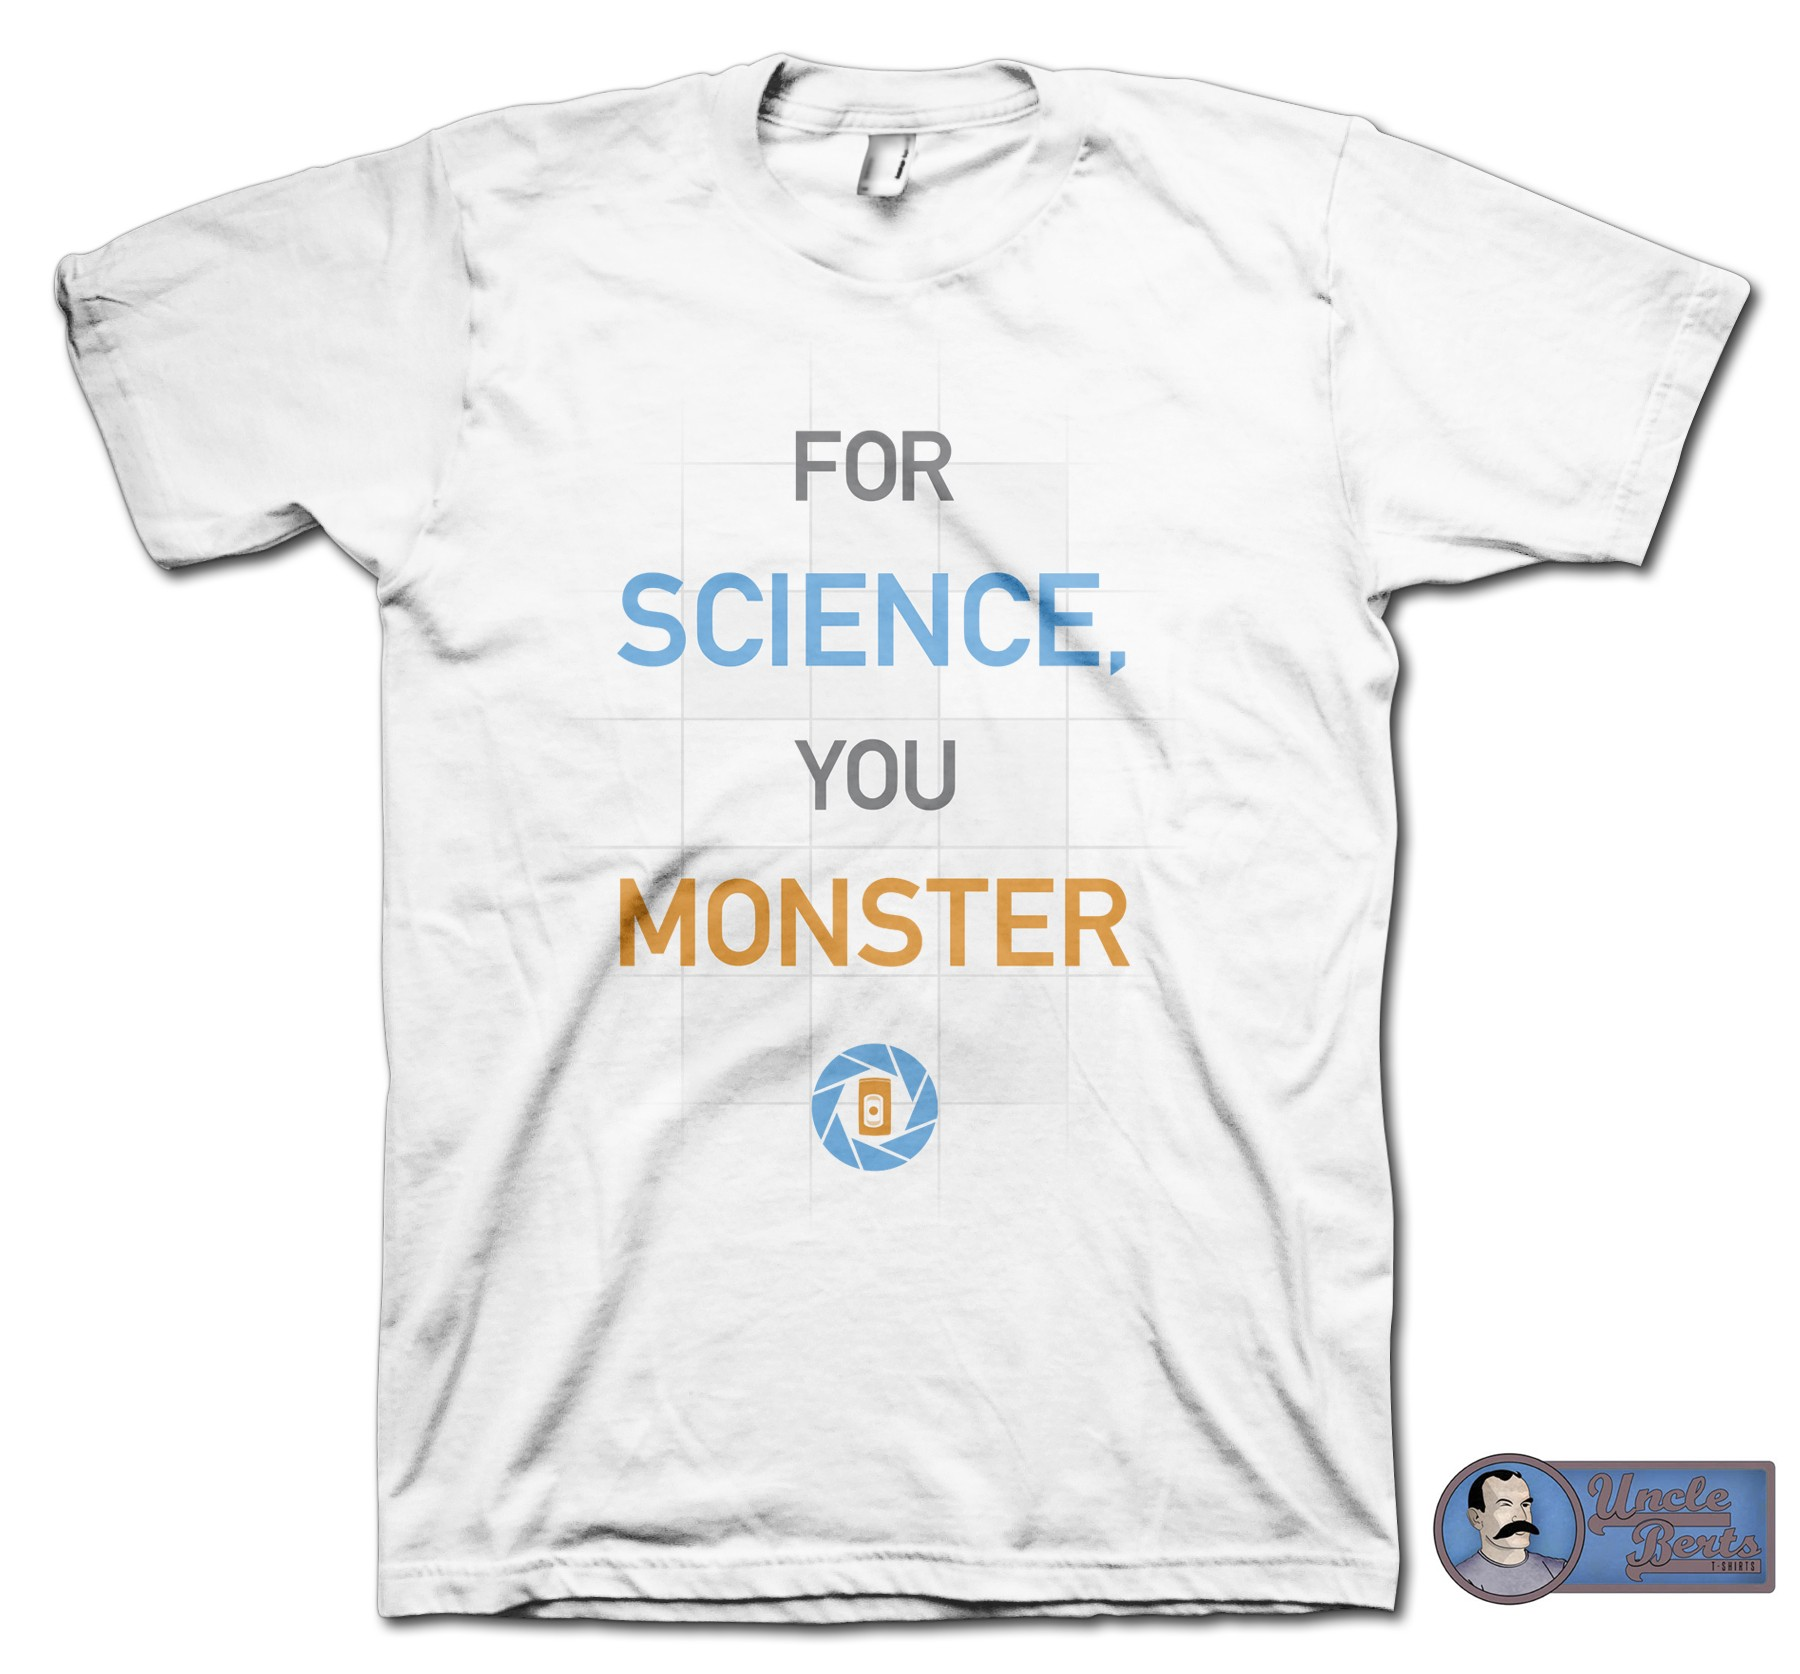 For Science You Monster T-Shirt - inspired by the Portal series